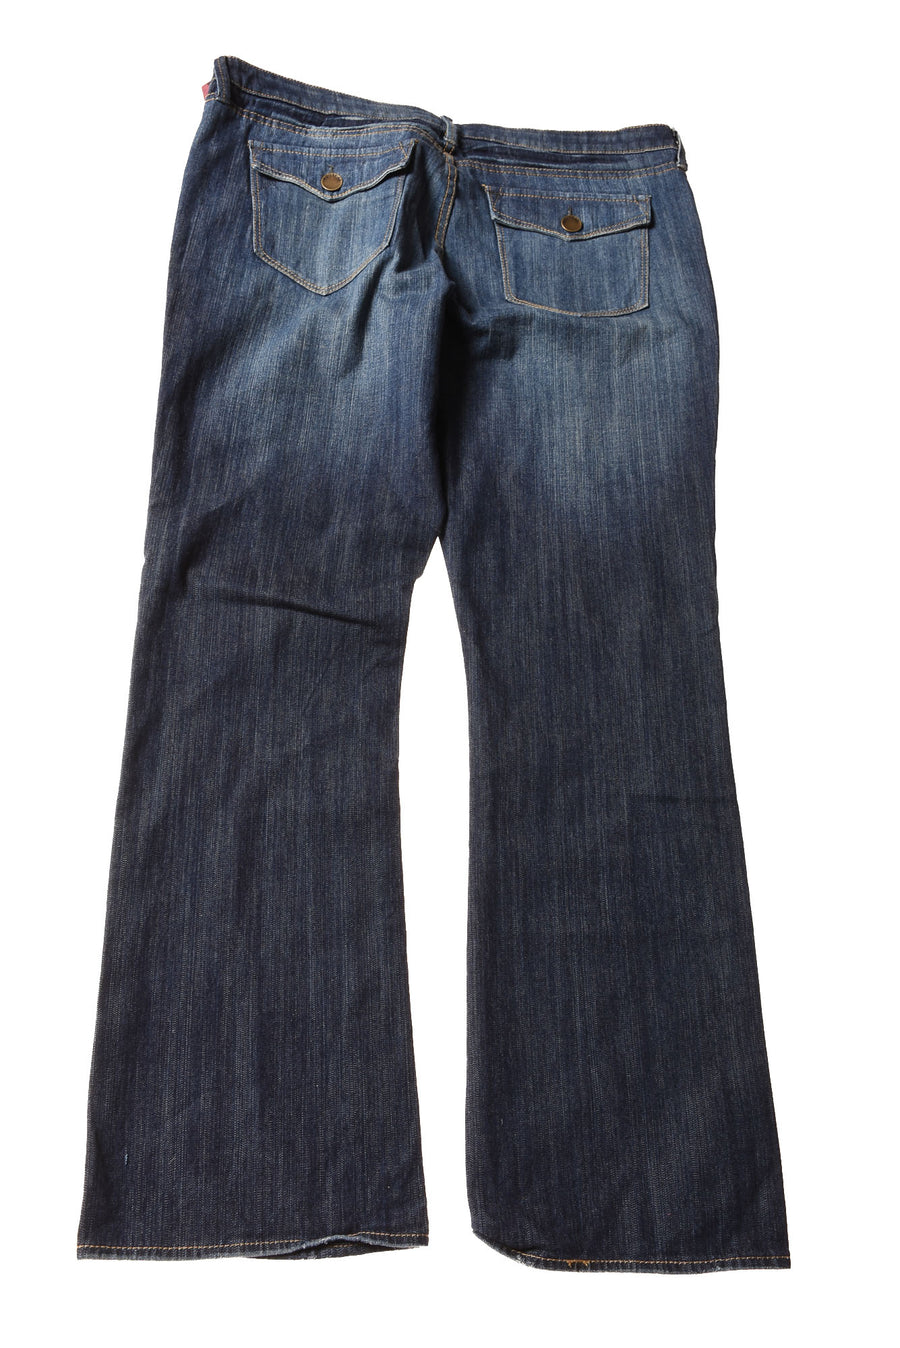 NEW Route 66 Women's Jeans 16 Blue